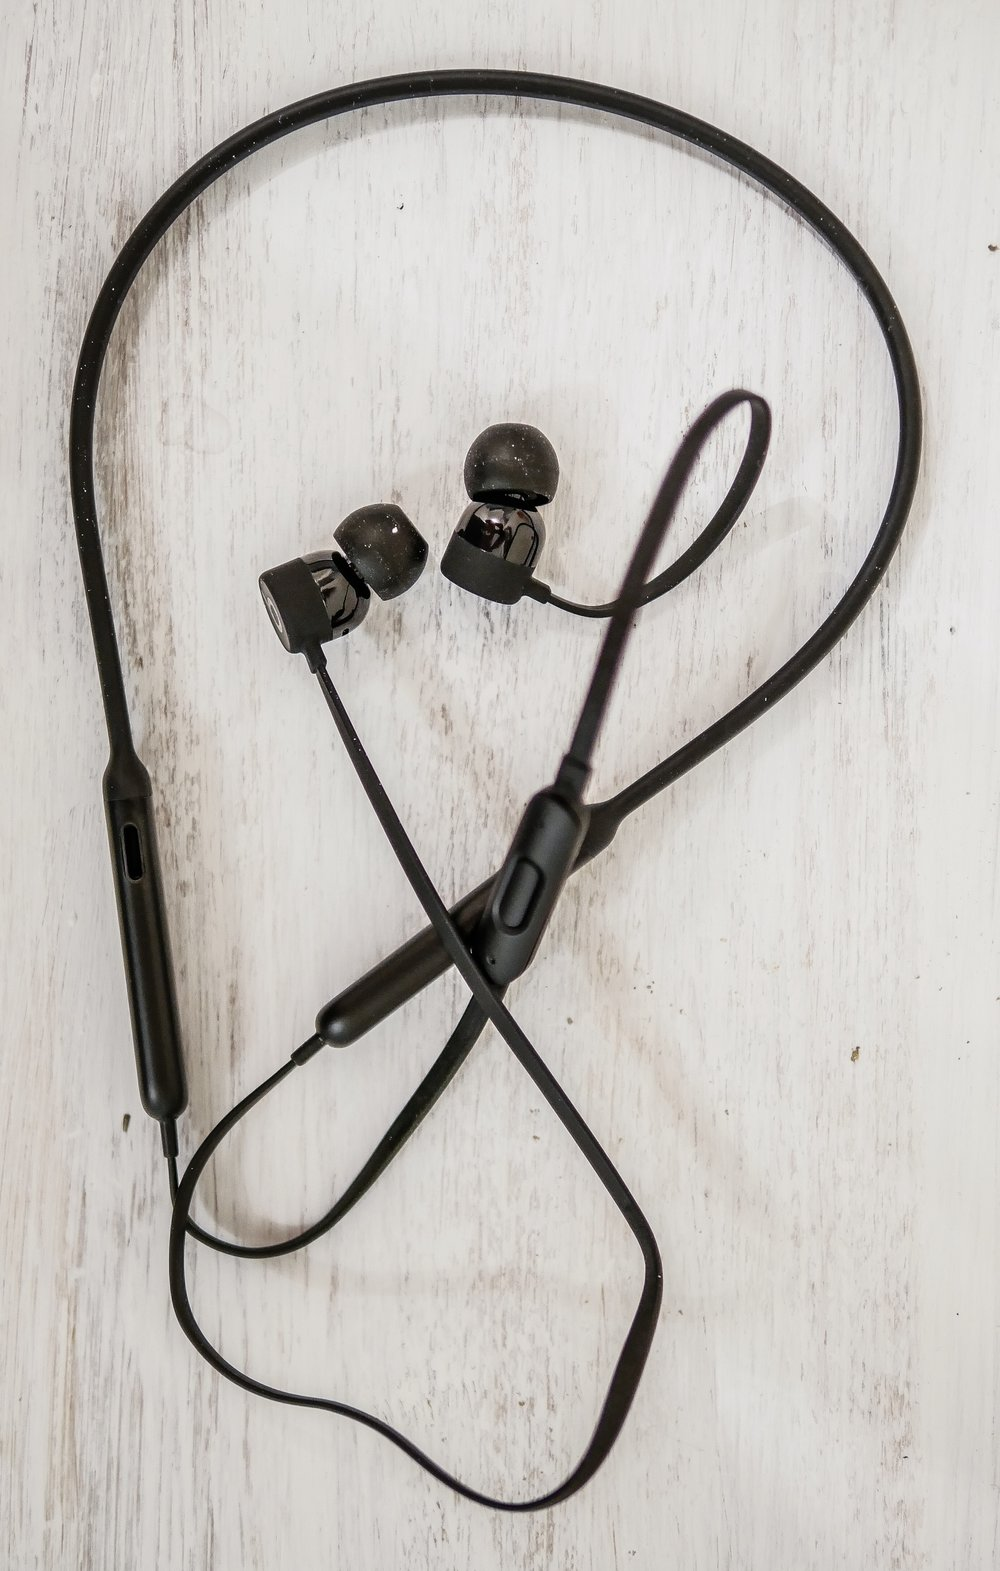 Beats by Dre Beats X Wireless Bluetooth Earbuds Review — Audiophile On